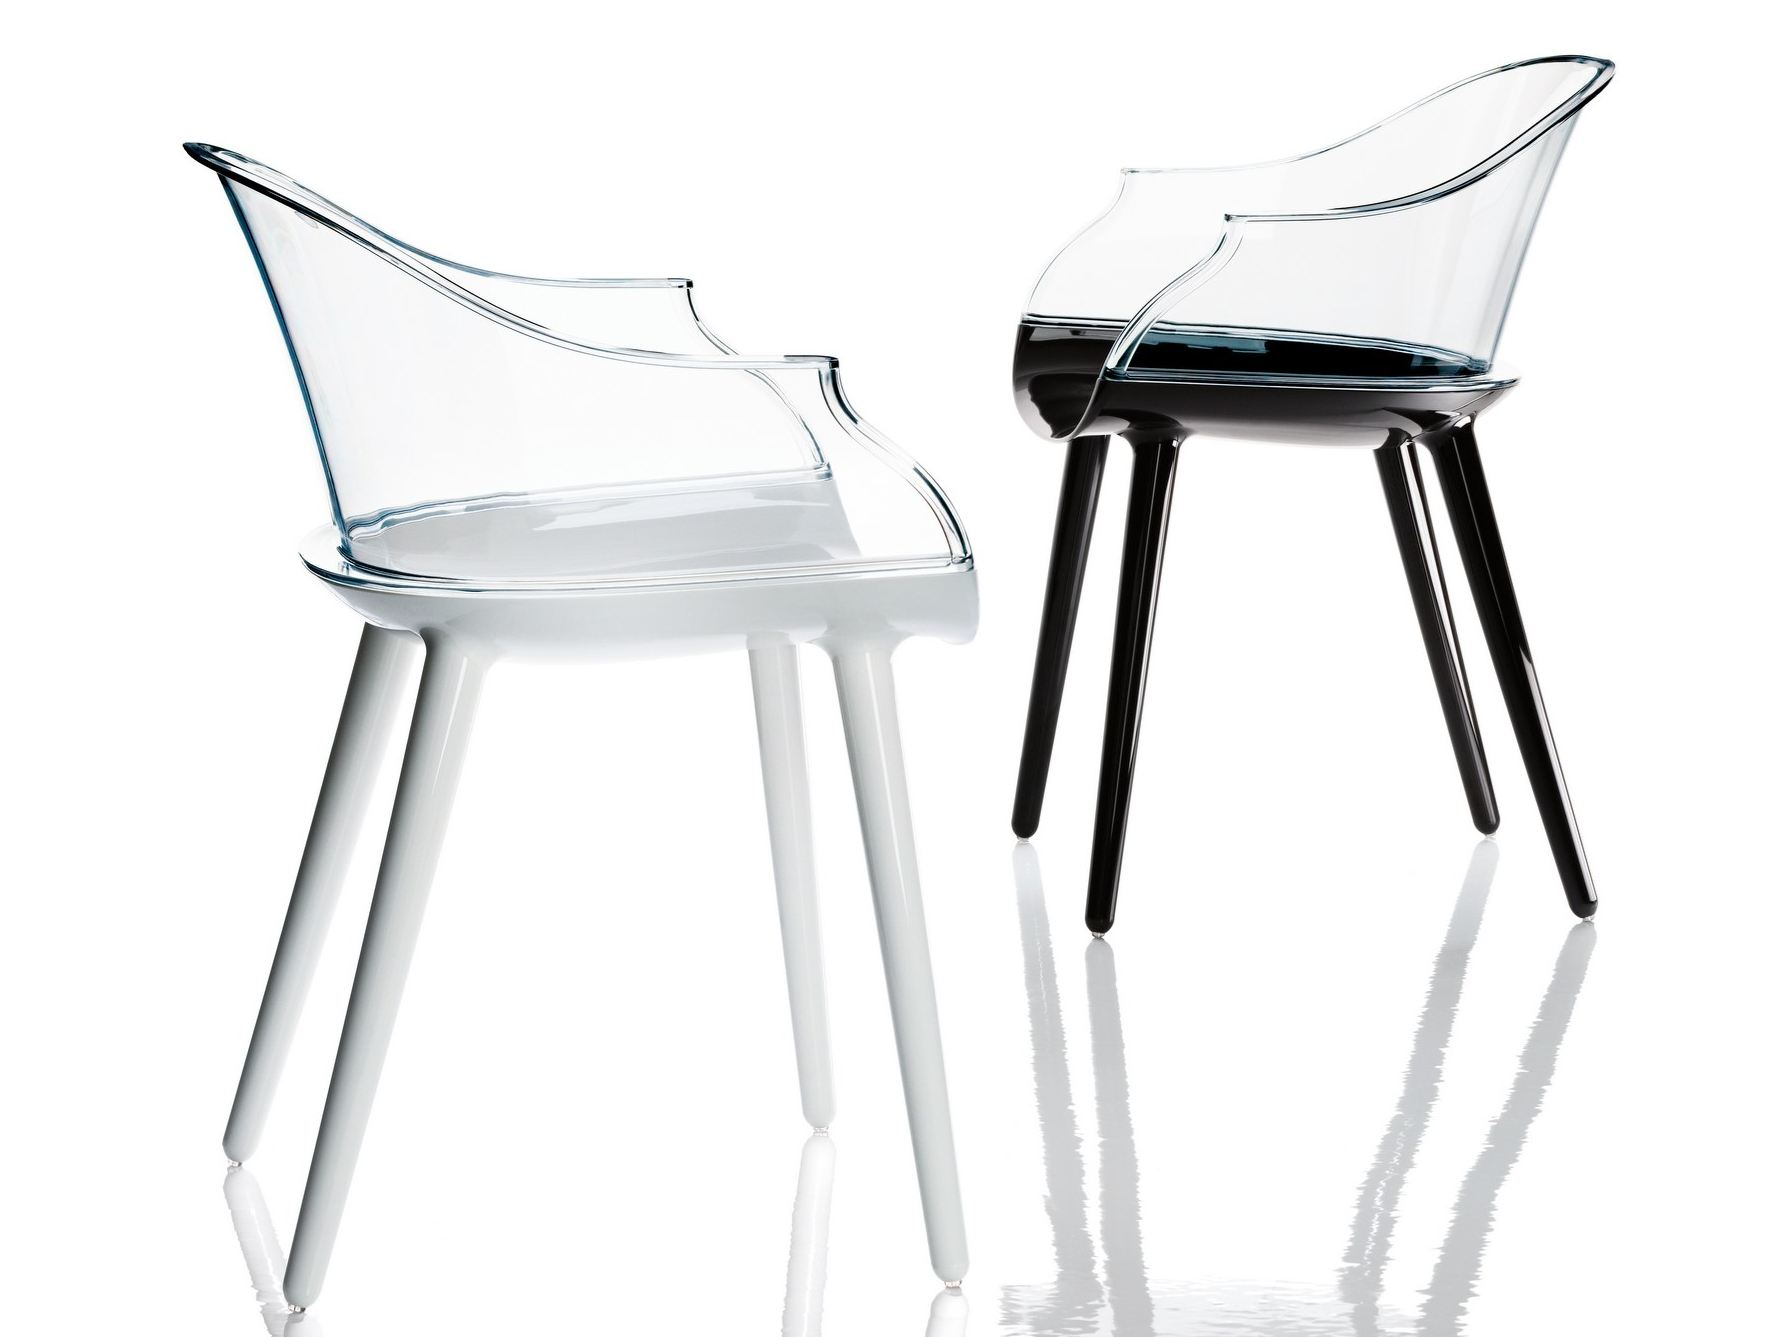 Cyborg chair by magis design marcel wanders for Magis chair